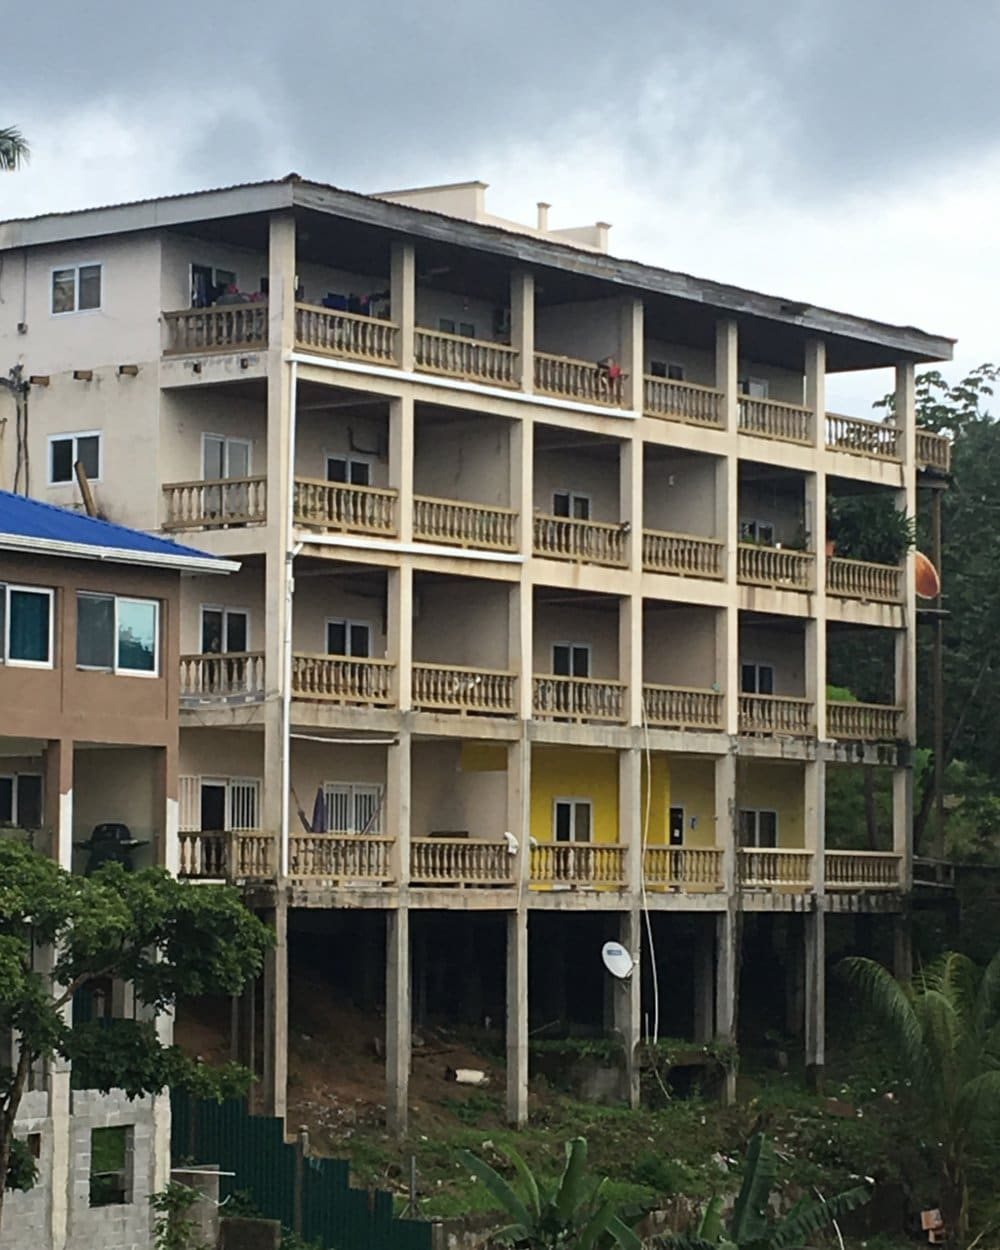 Run-down, four-story condo on hillside